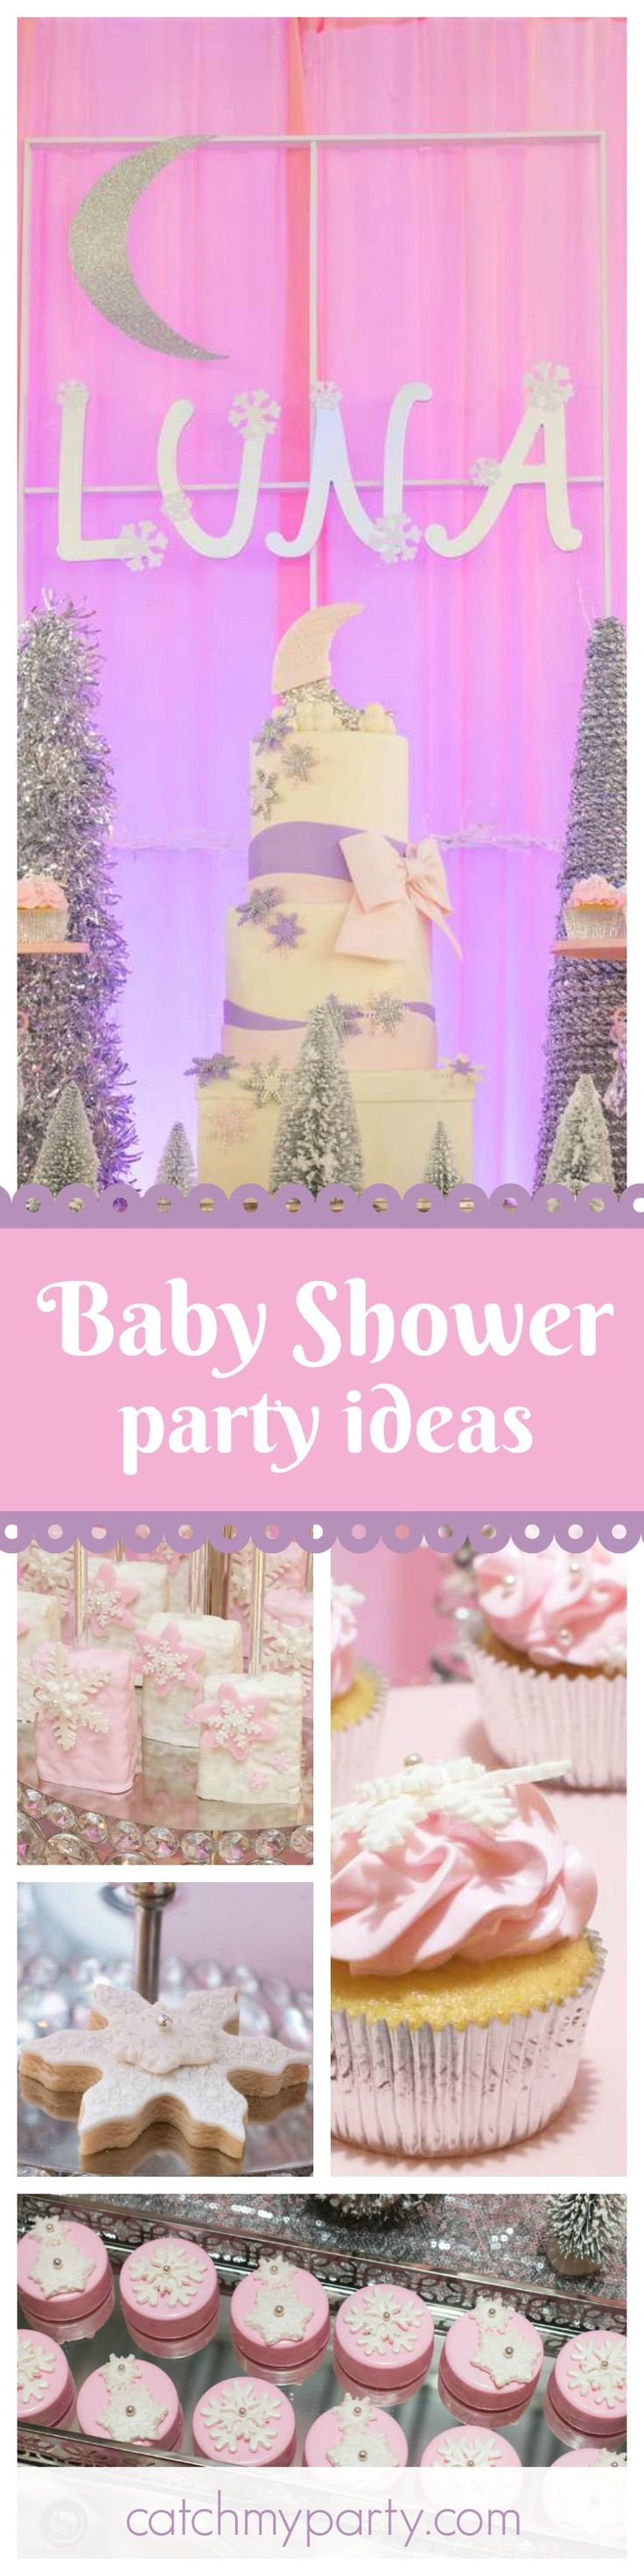 baby shower party planning ideas on pinterest party planning baby